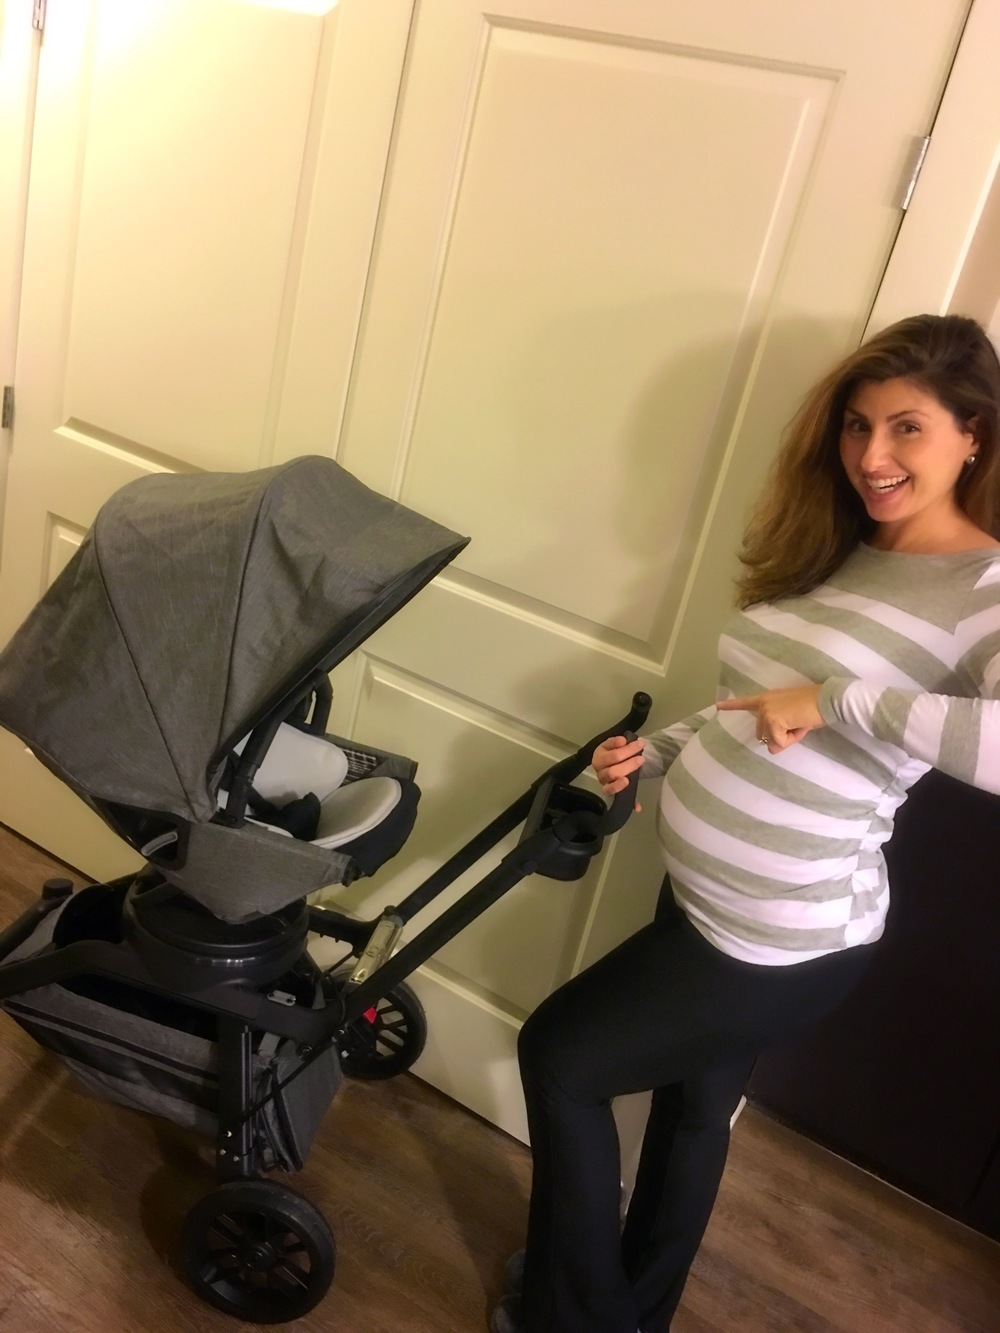 I was able to buy this very expensive stroller with 2 weeks of beachbody earnings